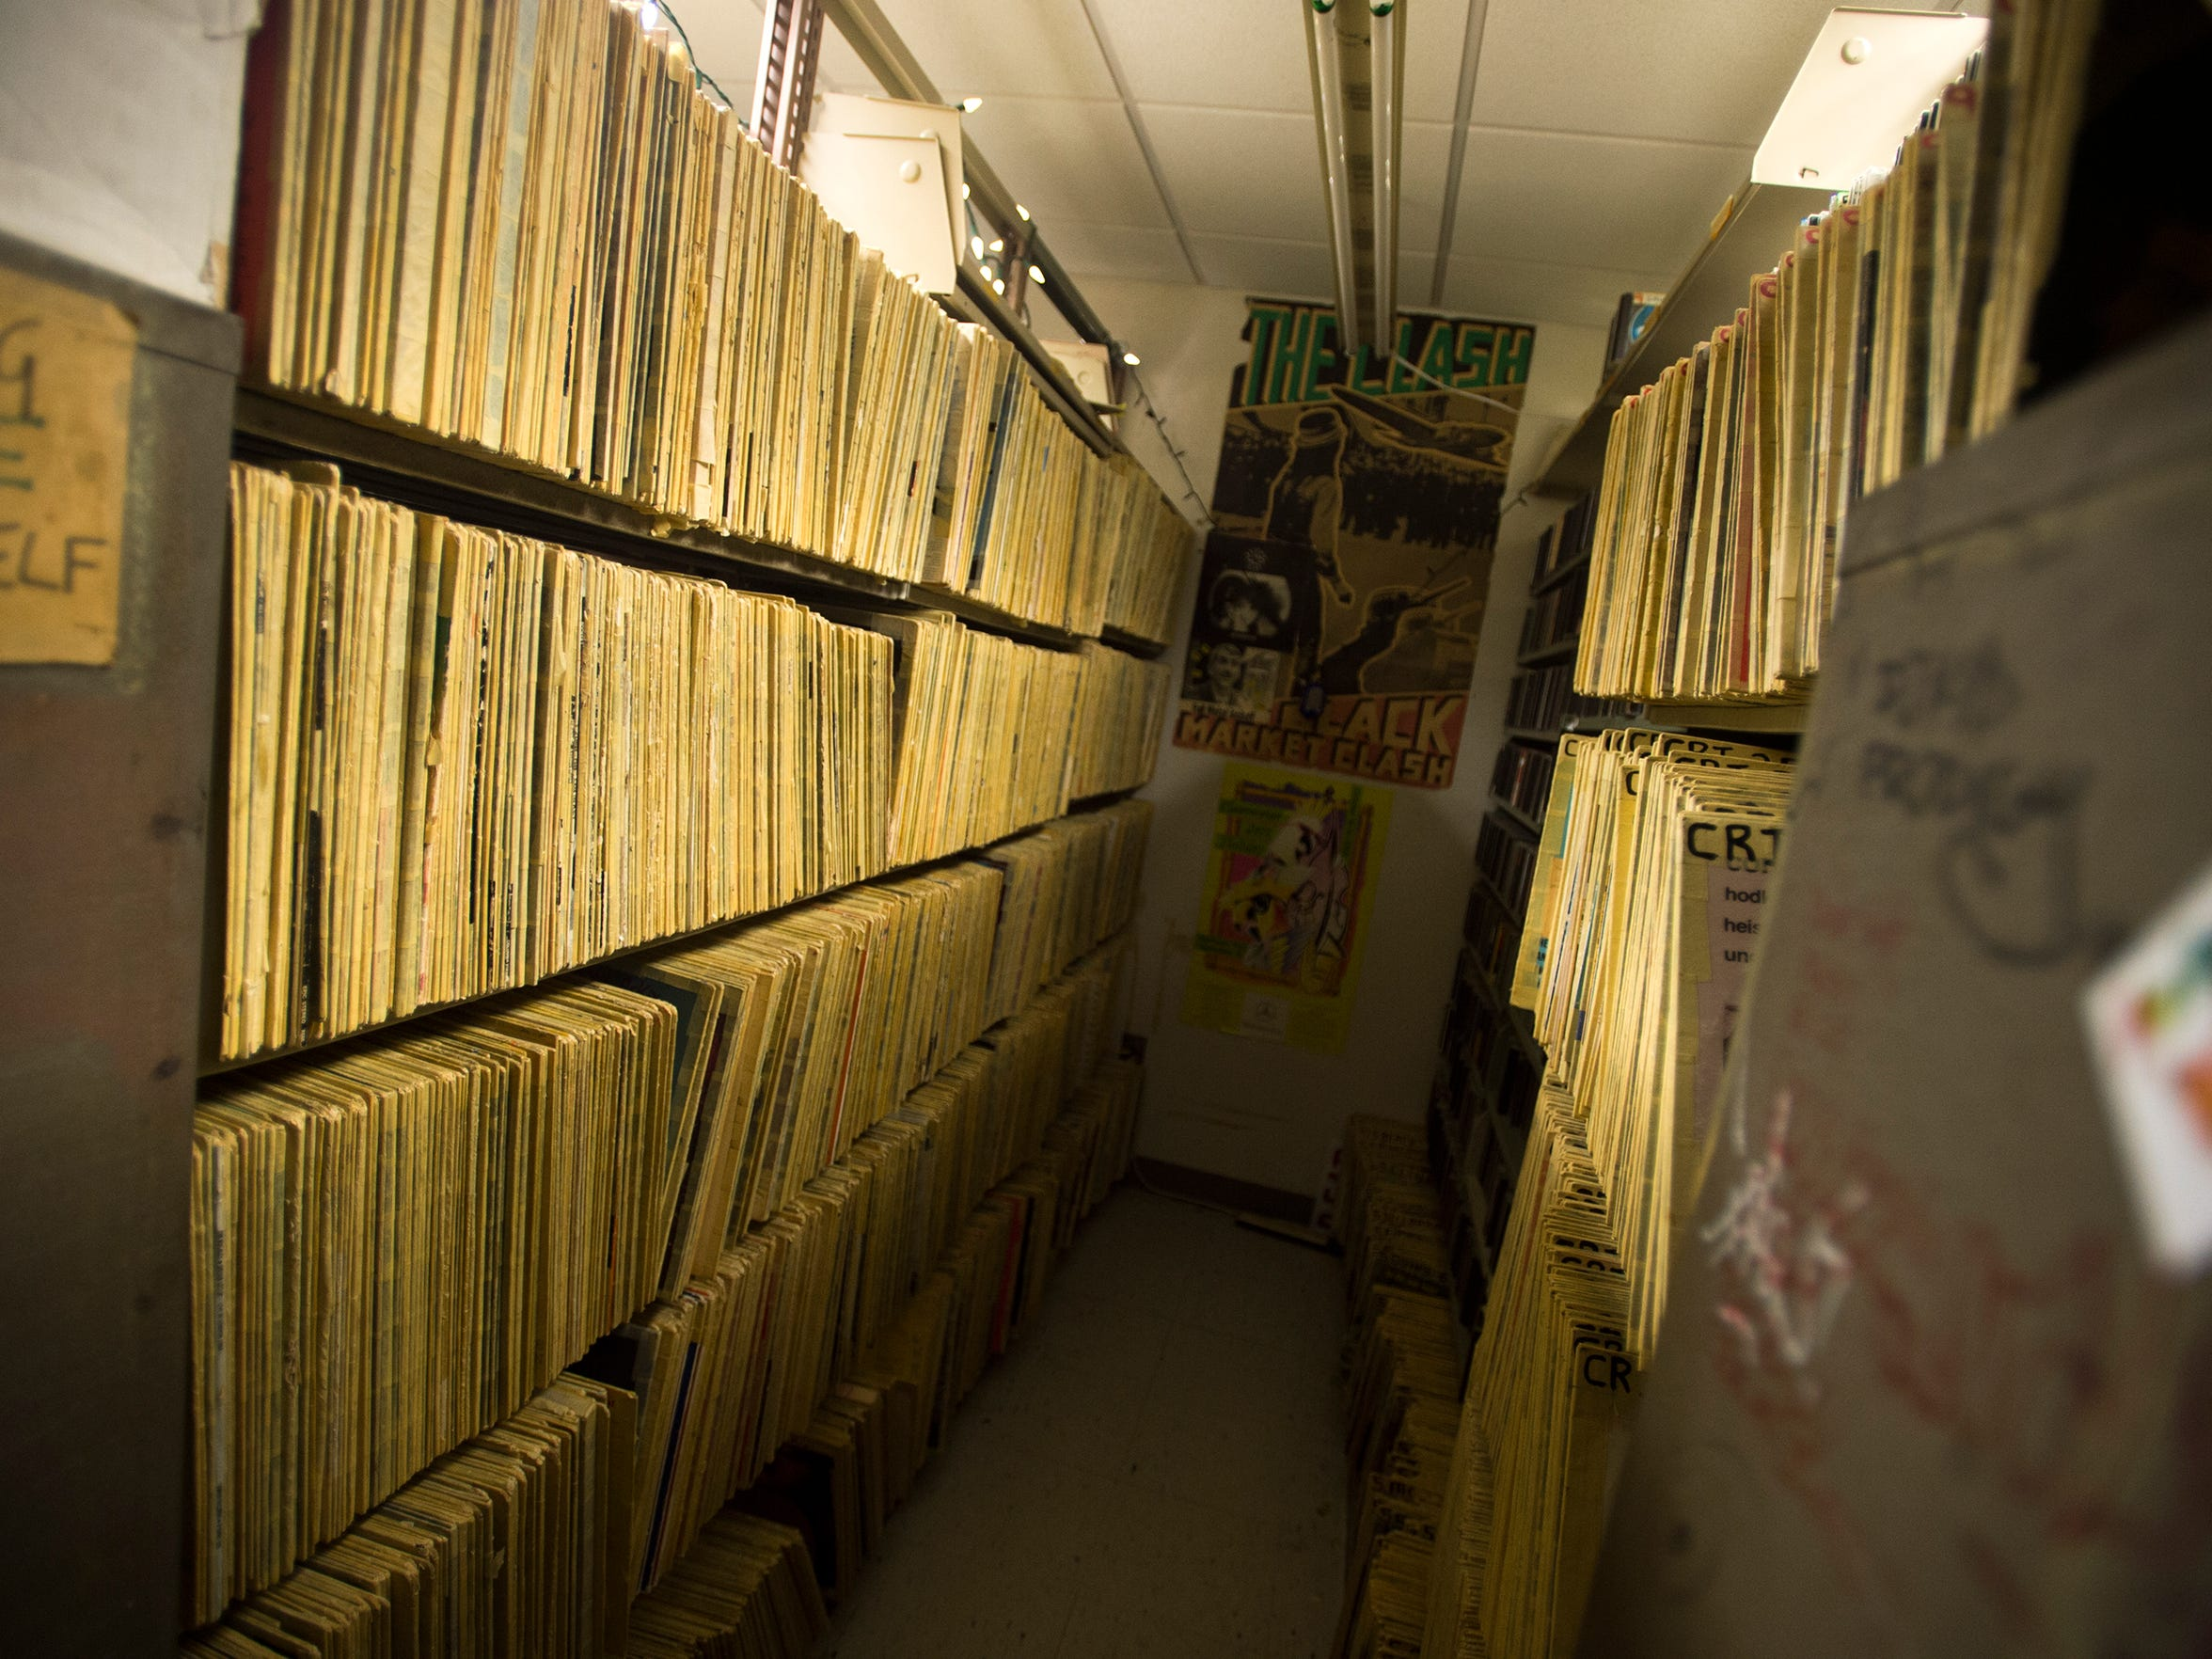 While much of WHRW's music is now stored digitally, hundreds of vinyl records still remain in the station's headquarters.